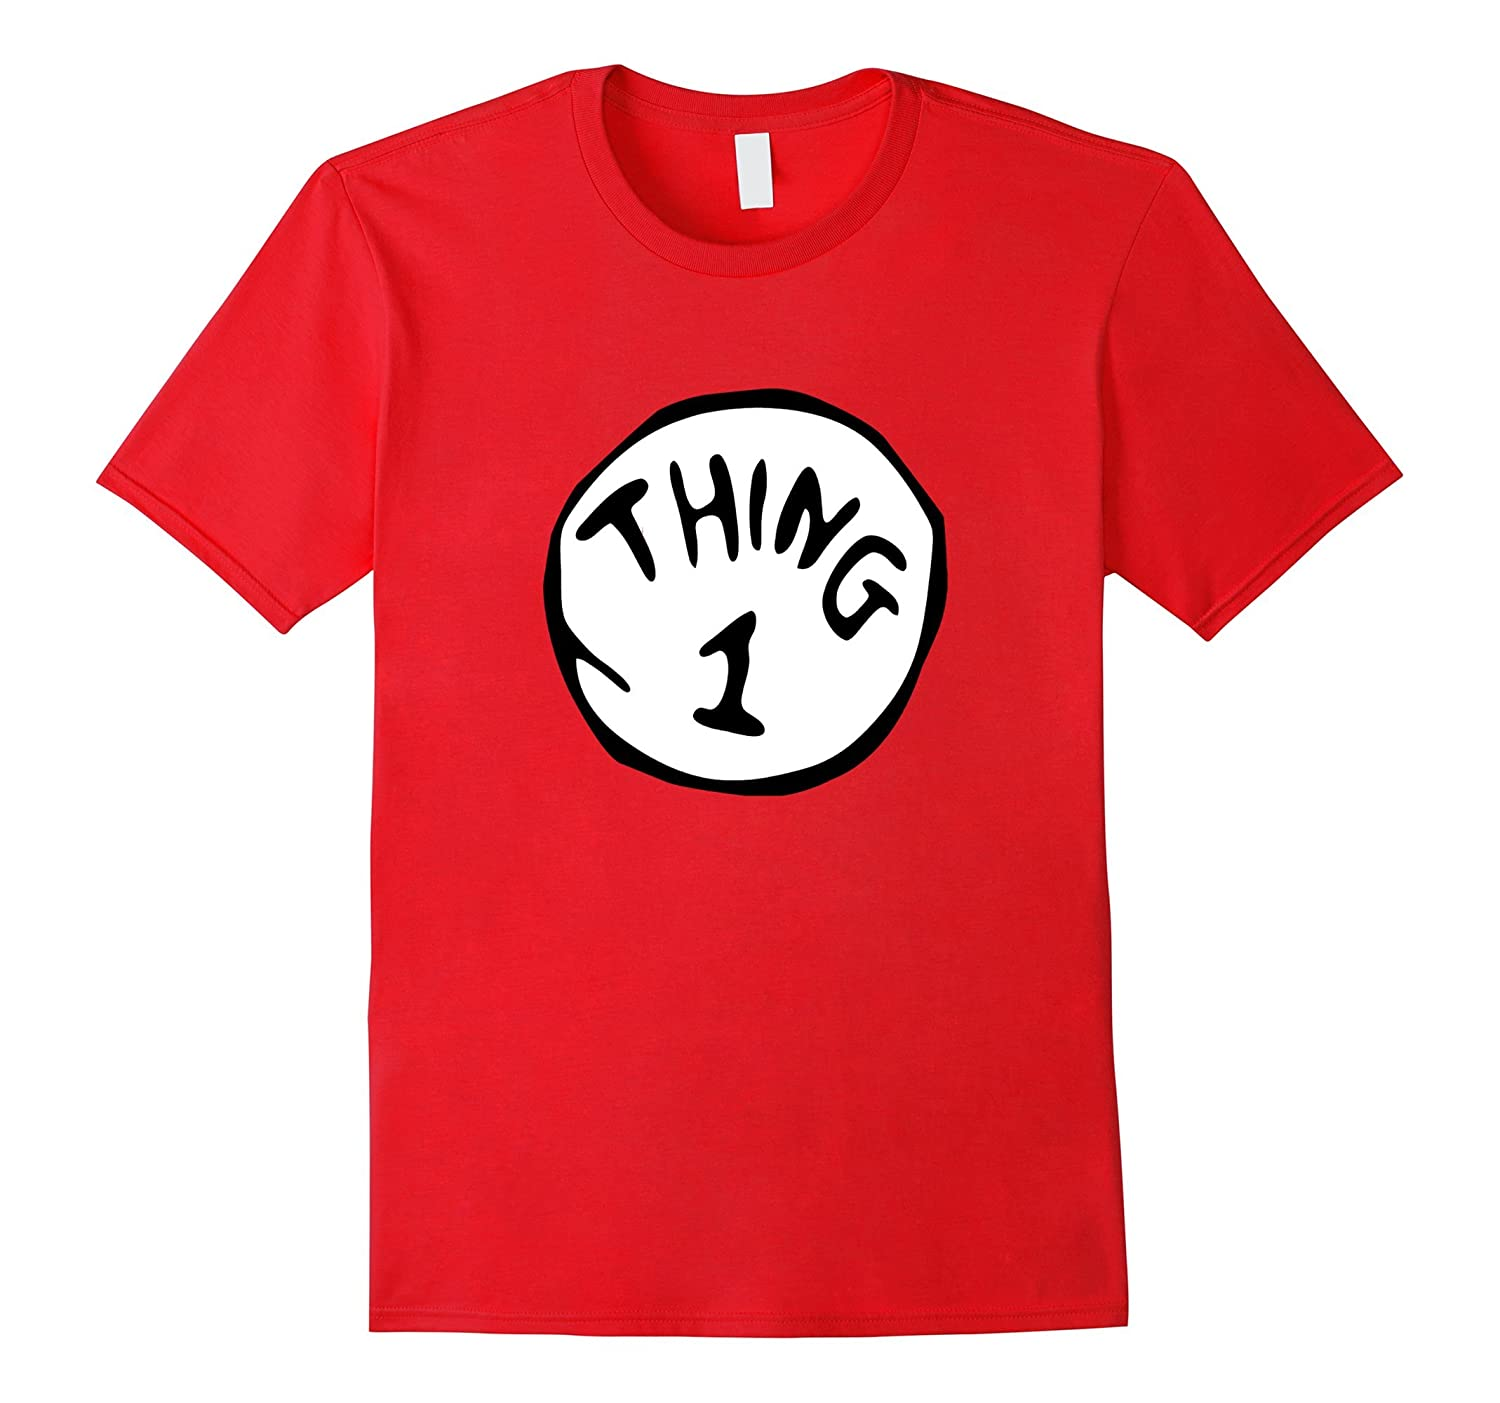 Thing-2 For All - Gifts For Christmas T Shirt-azvn